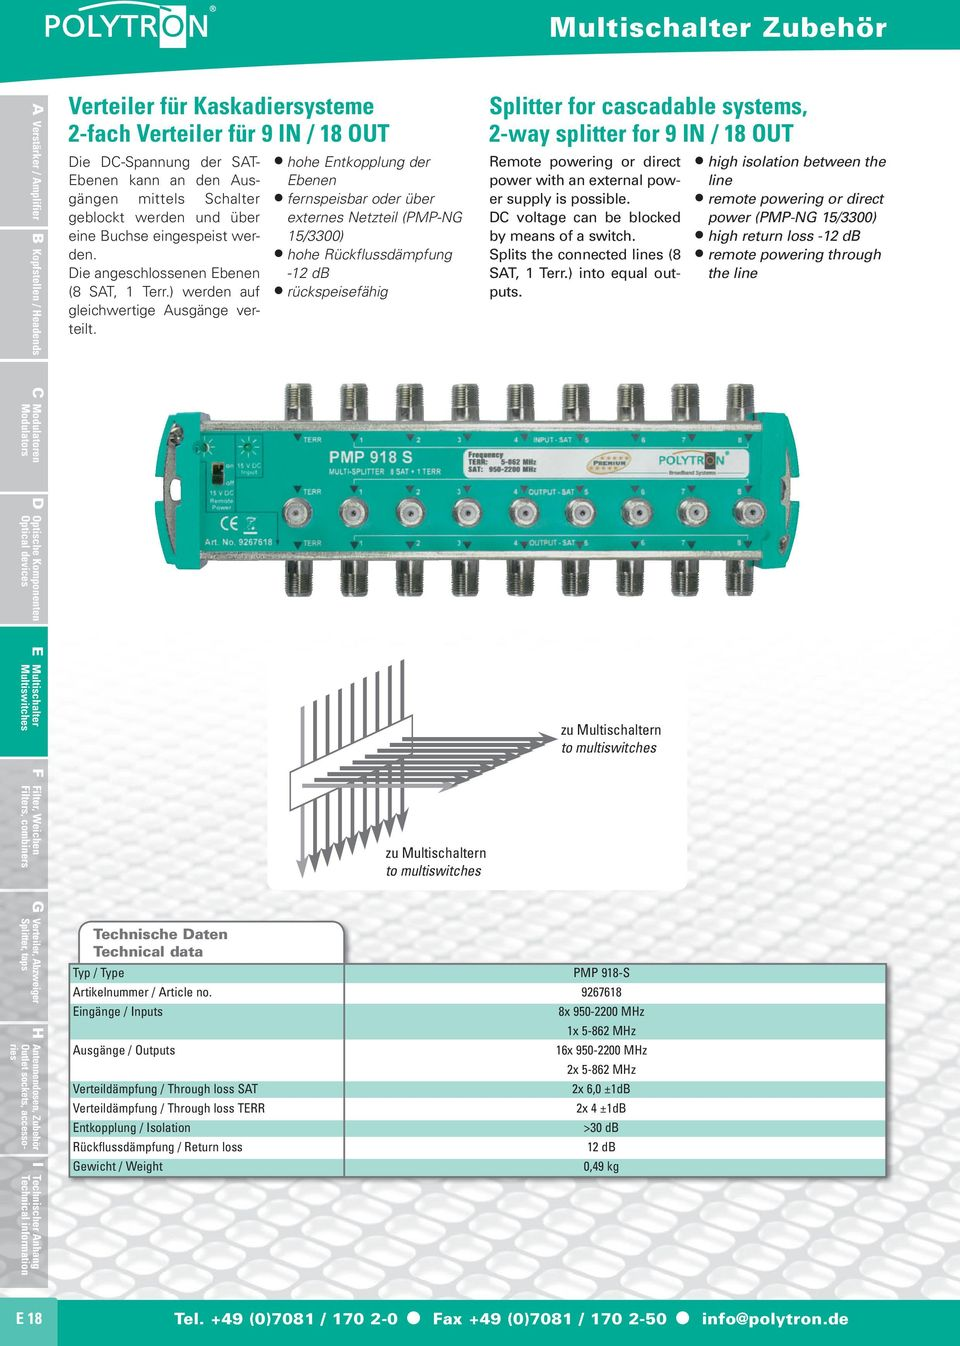 hohe Entkopplung der Ebenen fernspeisbar oder über externes Netzteil (PMP-NG 15/3300) - rückspeisefähig Splitter for cascadable systems, 2-way splitter for 9 IN / 18 OUT Remote powering or direct